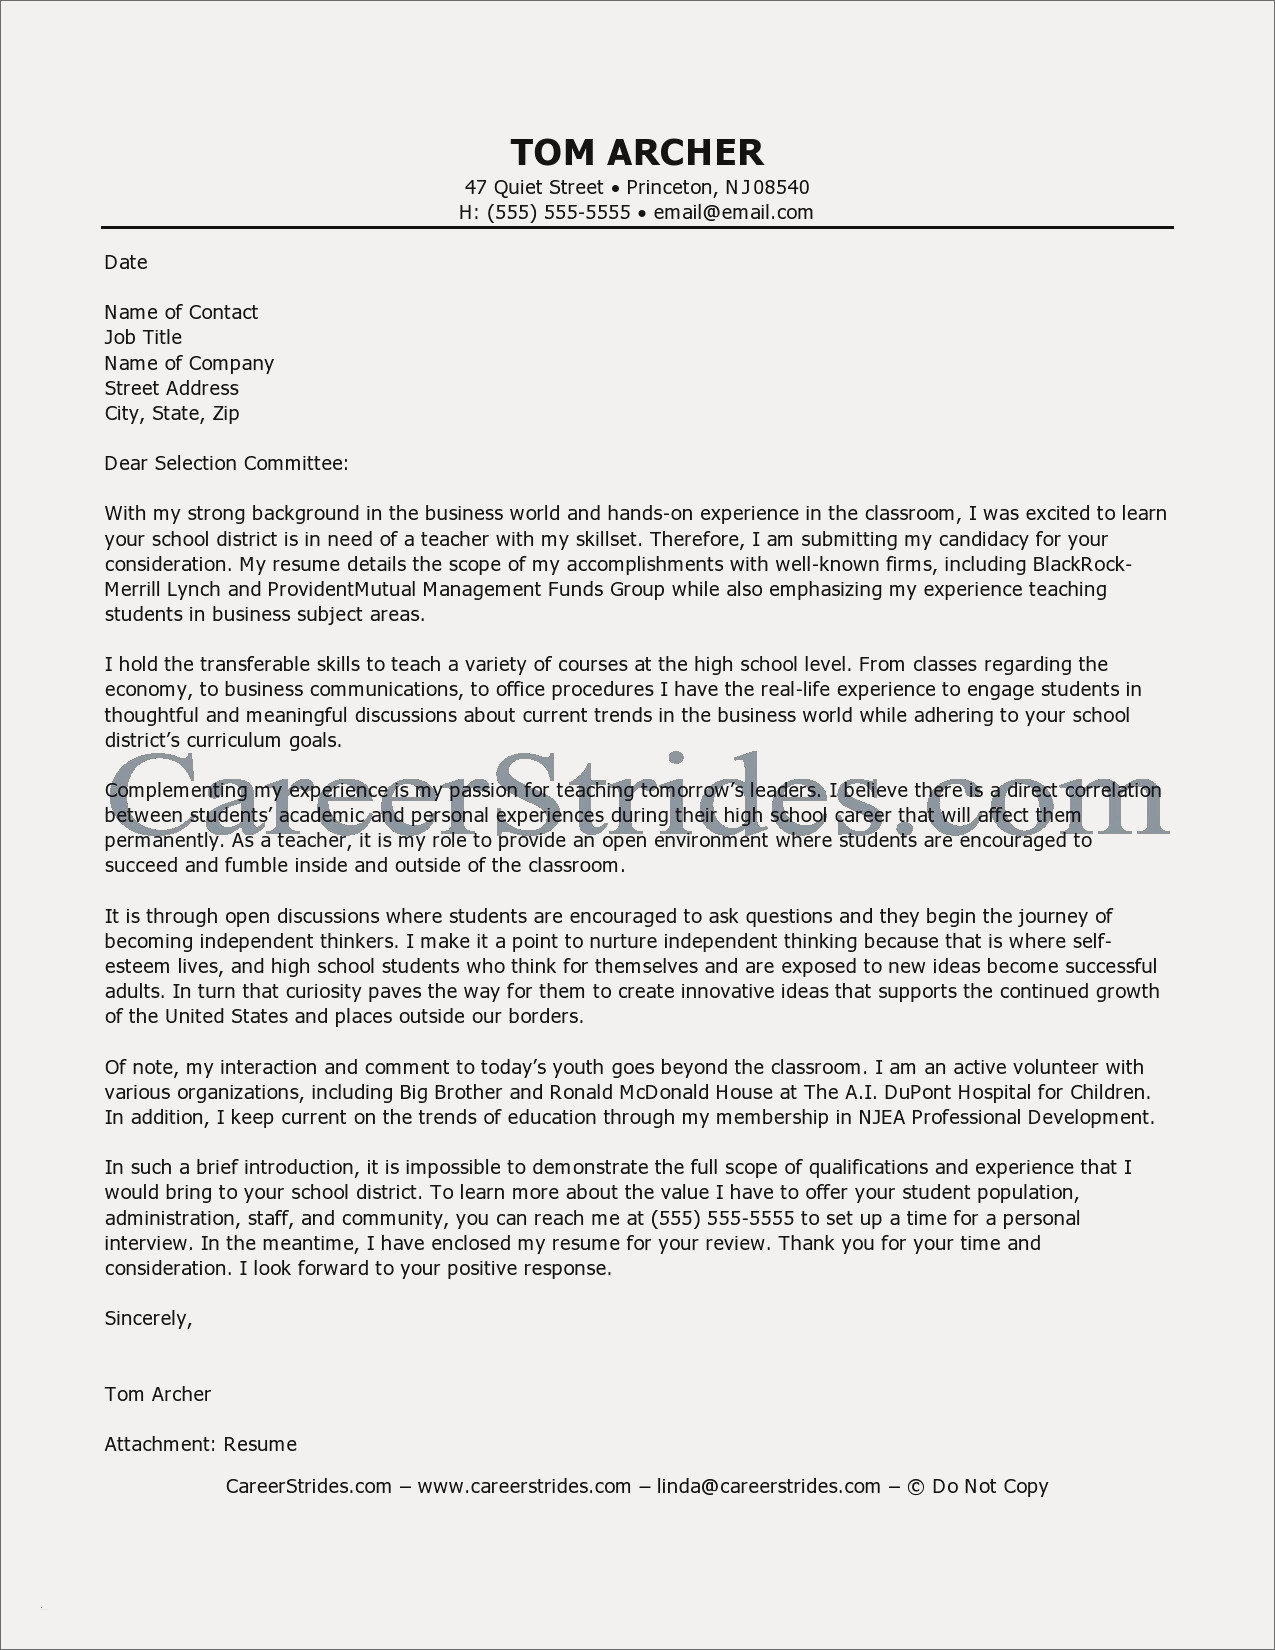 Professional Resume Layout - 20 Inspirational Academic Resume Examples Land Of Template